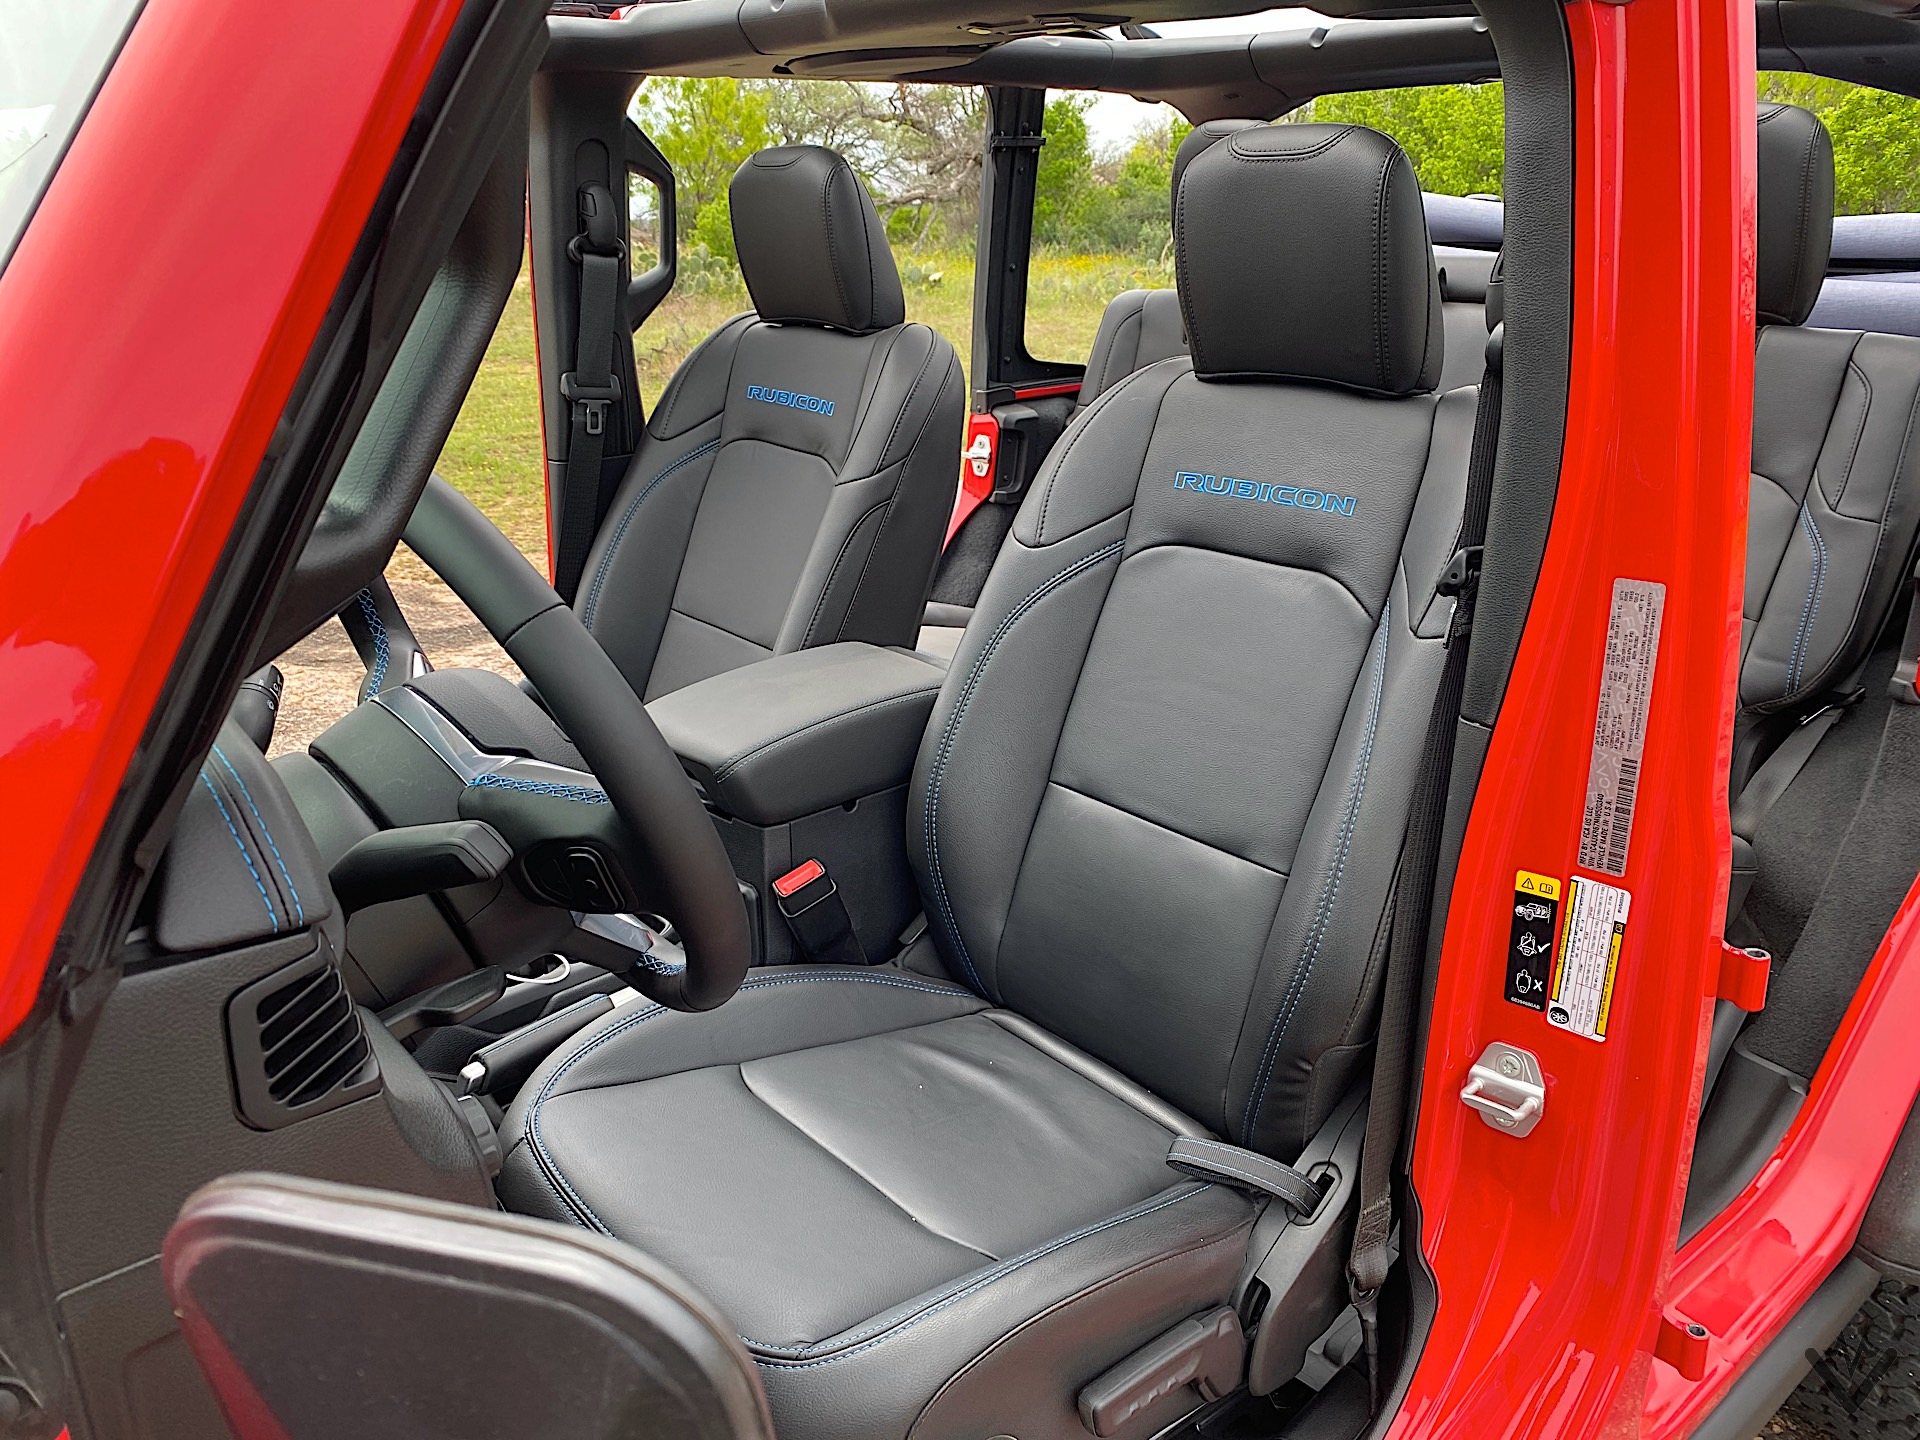 2021 Jeep Wrangler 4xe first drive IMG 3172